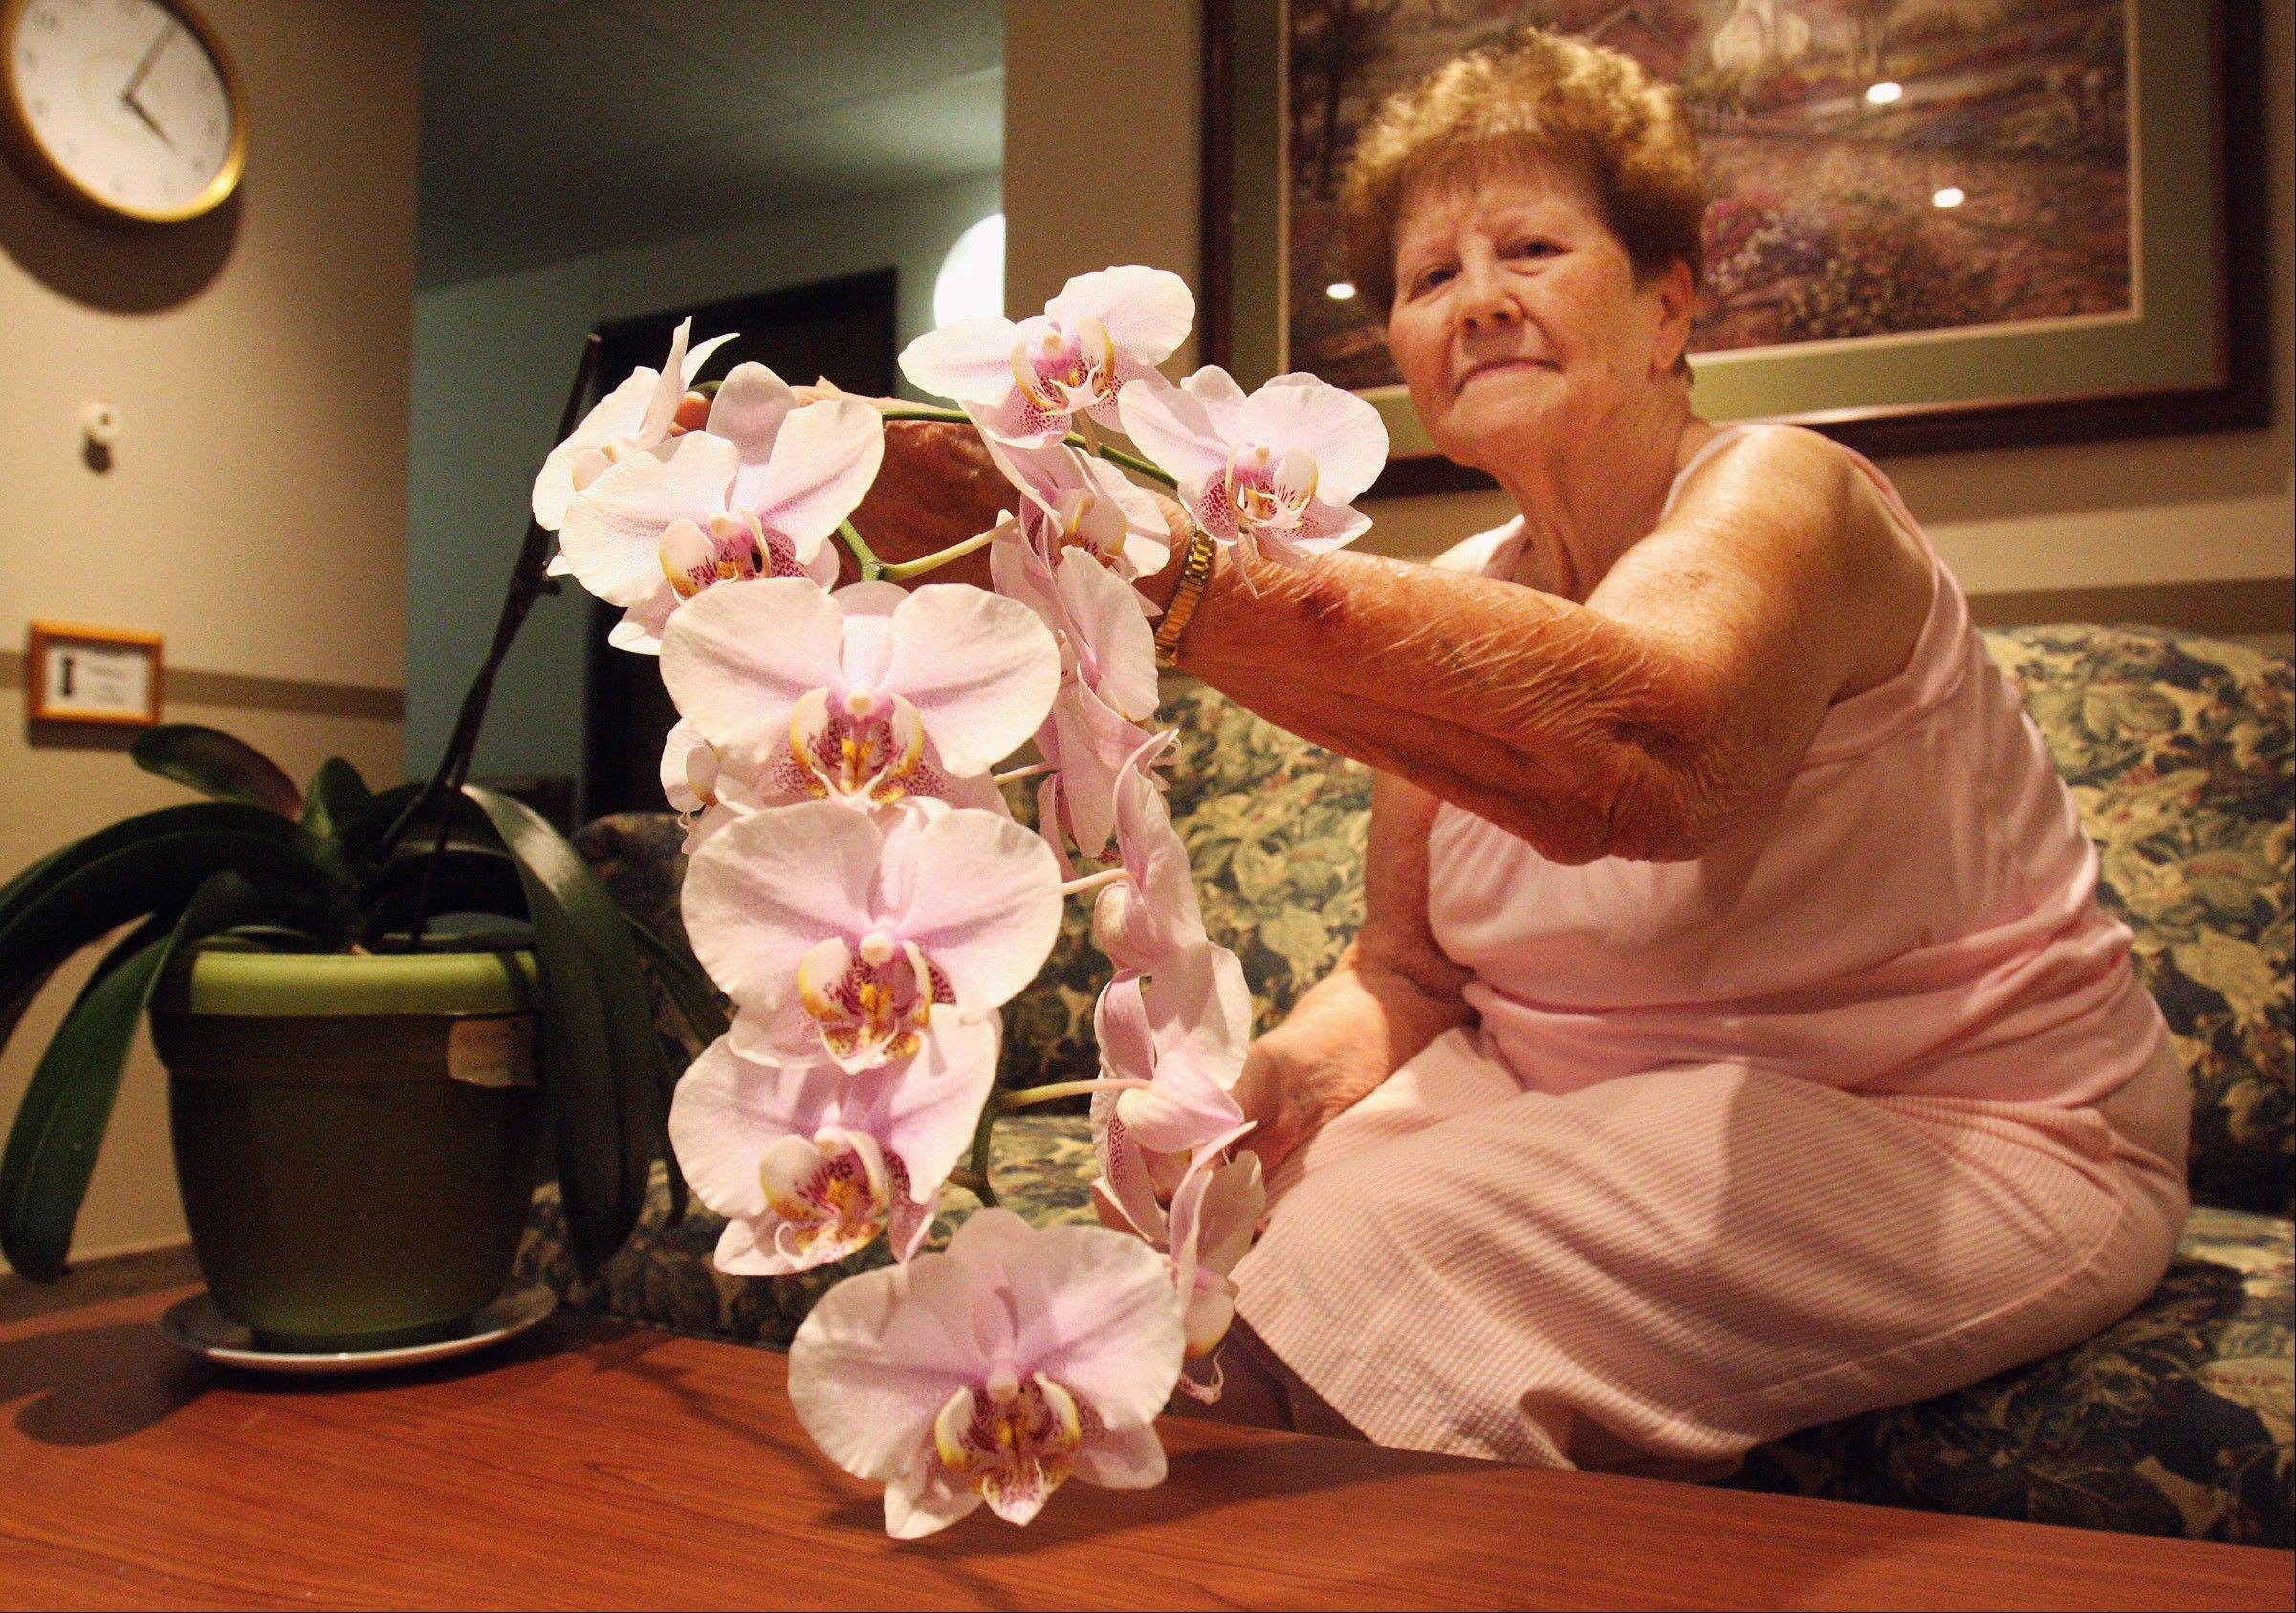 June Runte, 91, holds up her blooming orchid plant at her home in Freeport.